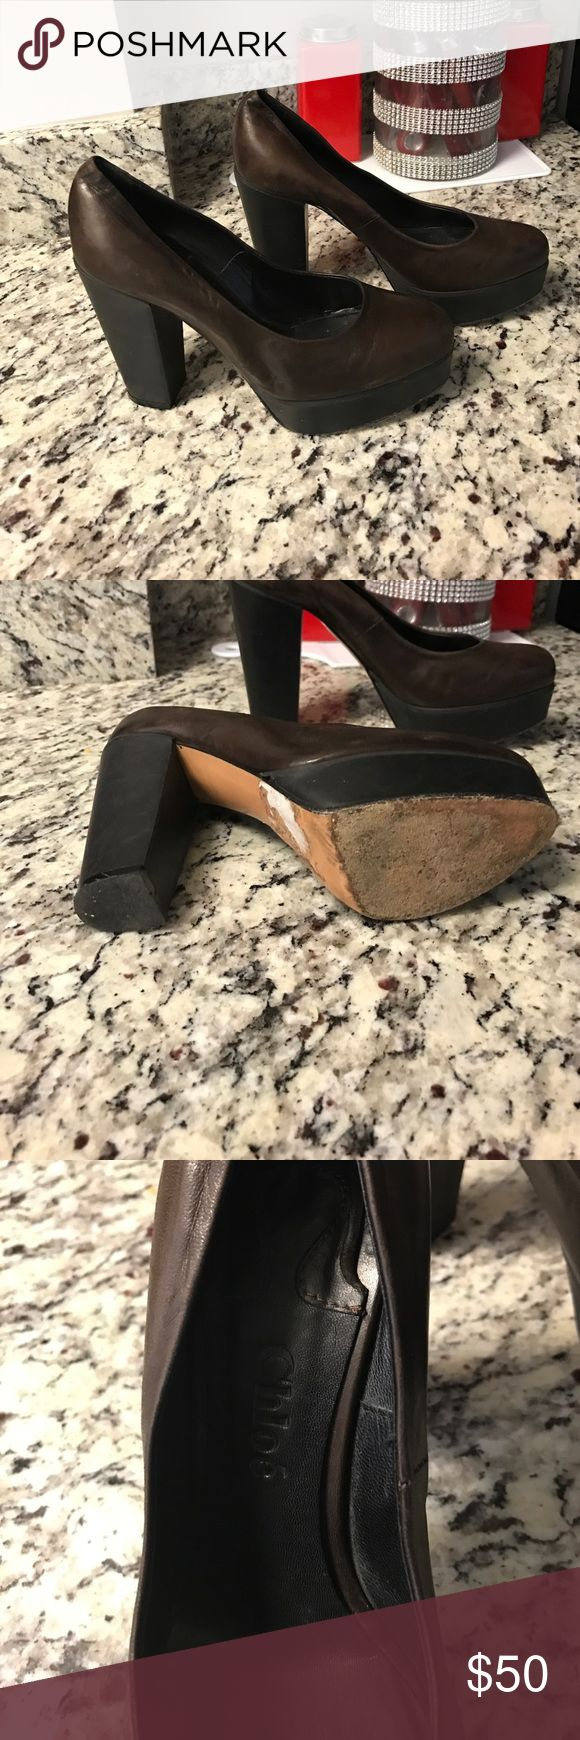 Chloe Brown Leather Pumps Brown Leather Heals in great condition... just need some Leather cleaner to clean since it was in storage. Chloe Shoes Heels